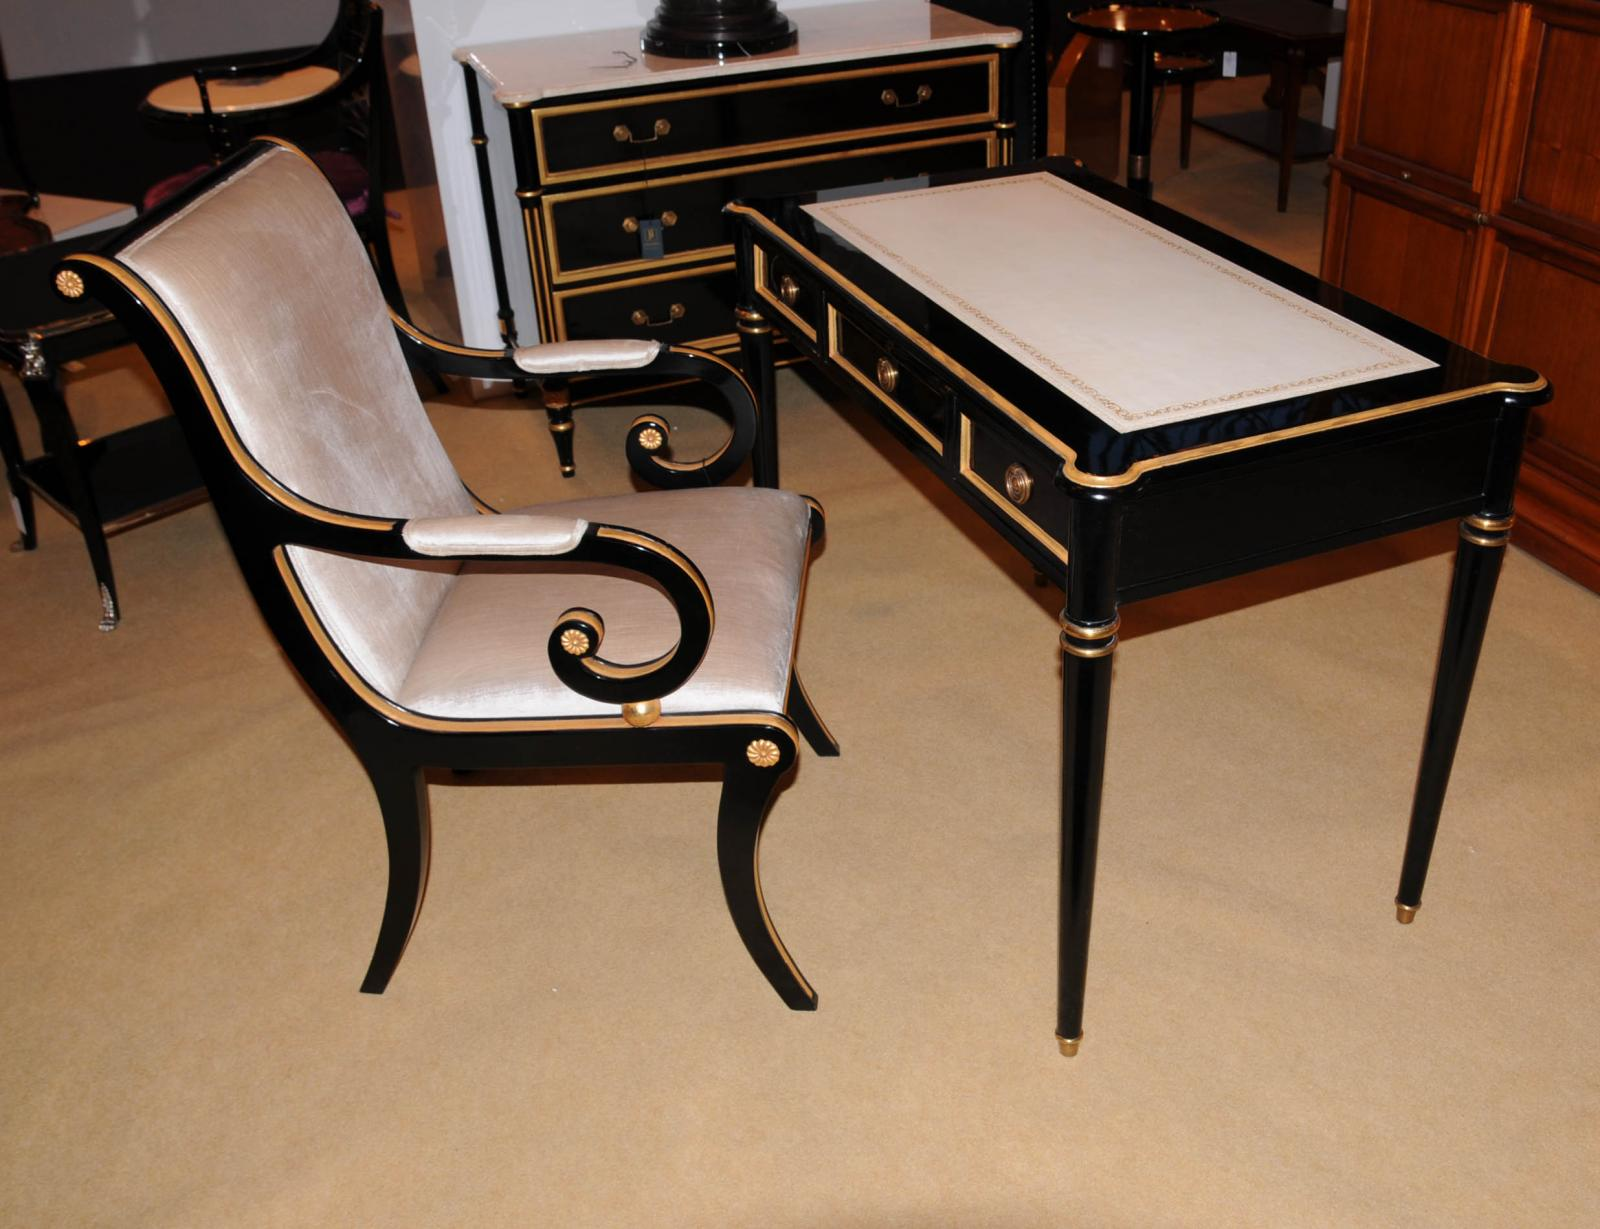 Regency Black Lacquer Writing Desk Chair Set Potters Bar